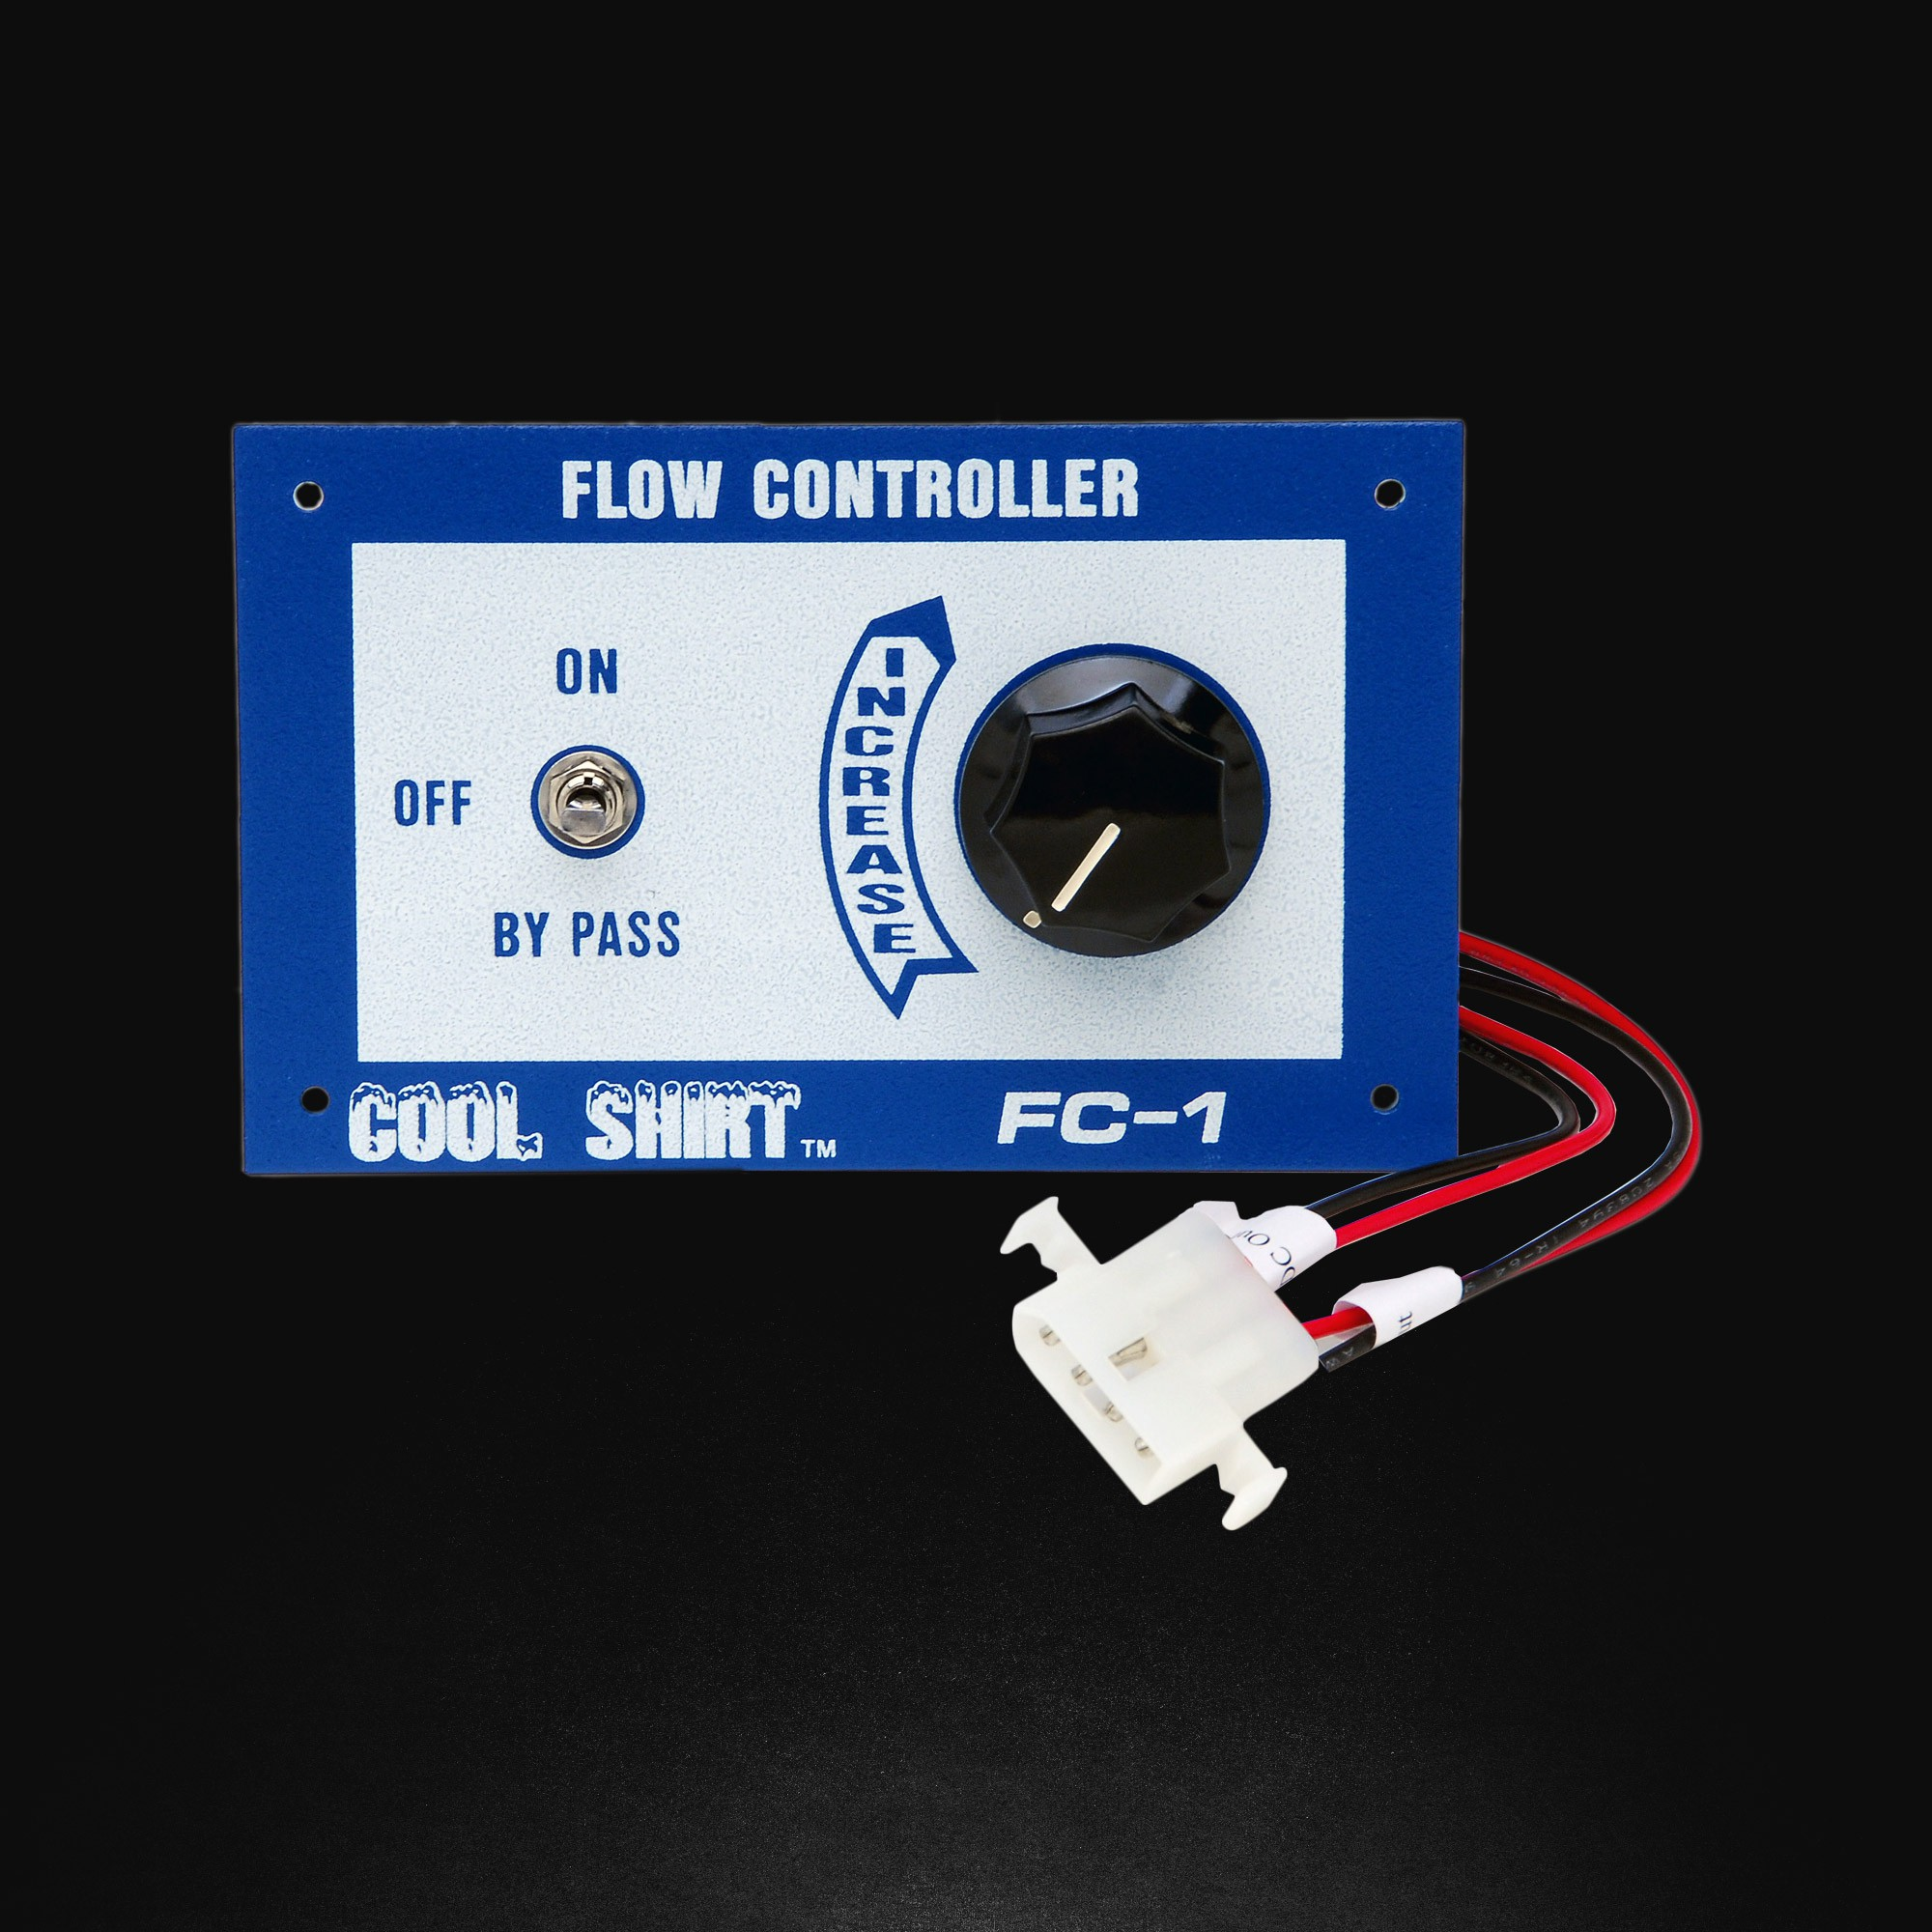 FLOW CONTROLLER FOR COOL SHIRT